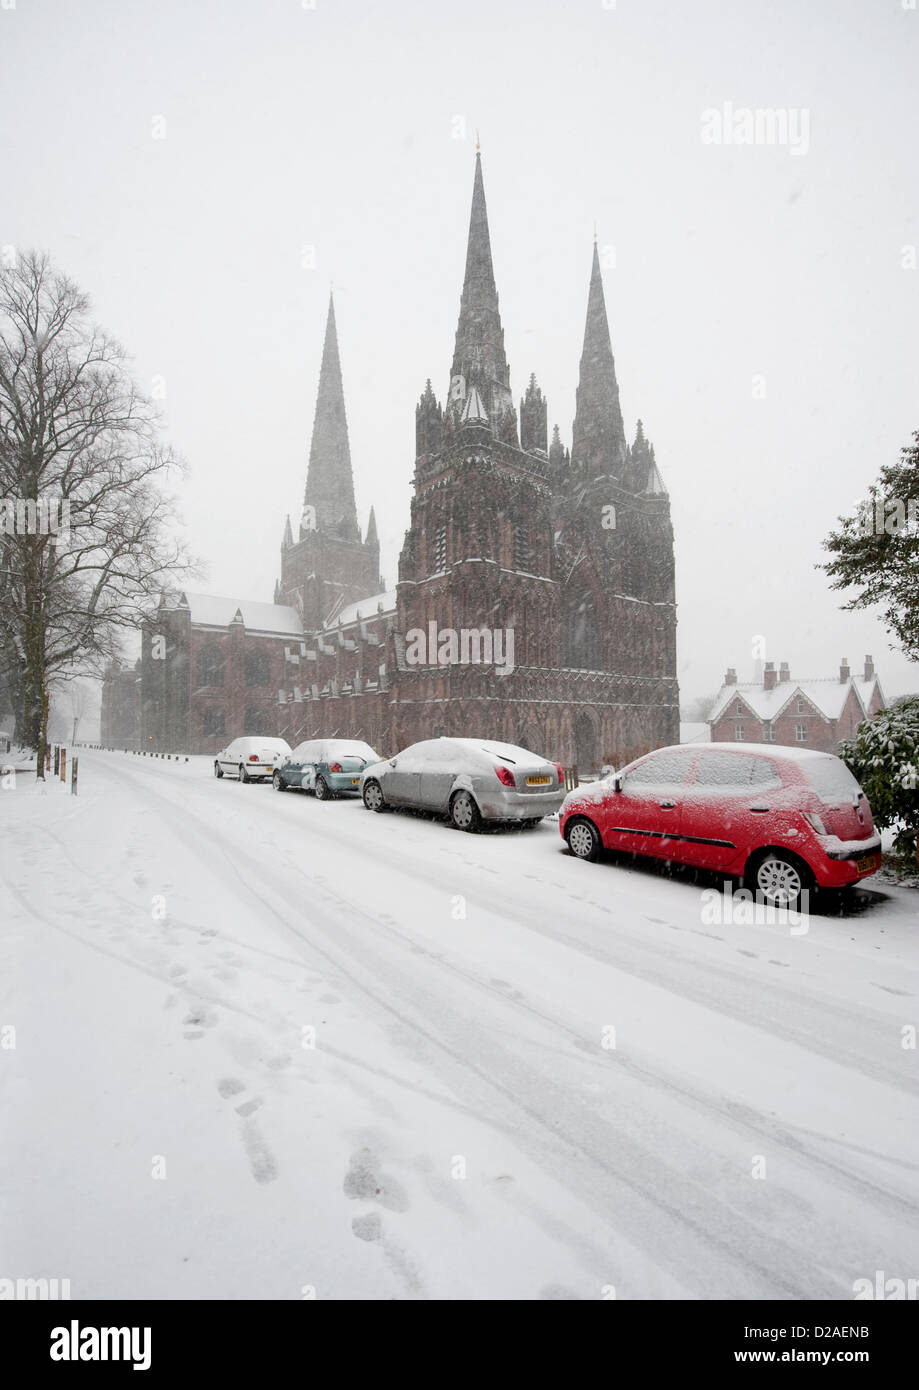 LICHFIELD, STAFFORDSHIRE, UK. 18TH JANUARY 2013. Heavy snow begins to fall overnight and continues throughout the - Stock Image